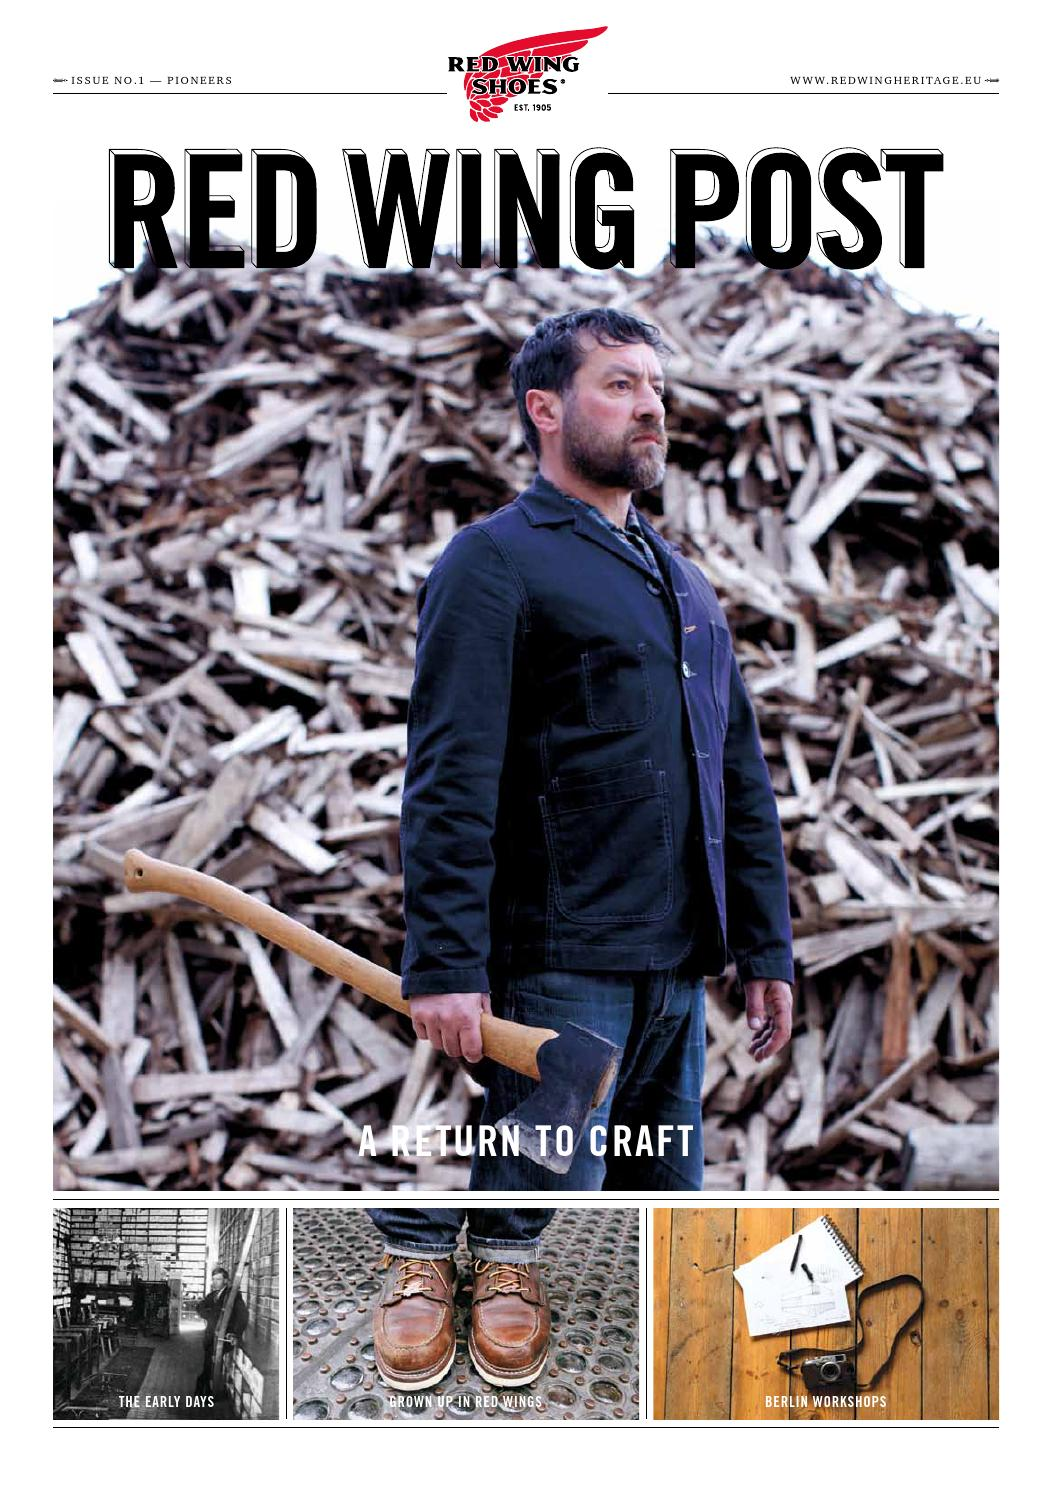 b3ac222257f Red Wing Post - Issue 1 by Red Wing Heritage - issuu